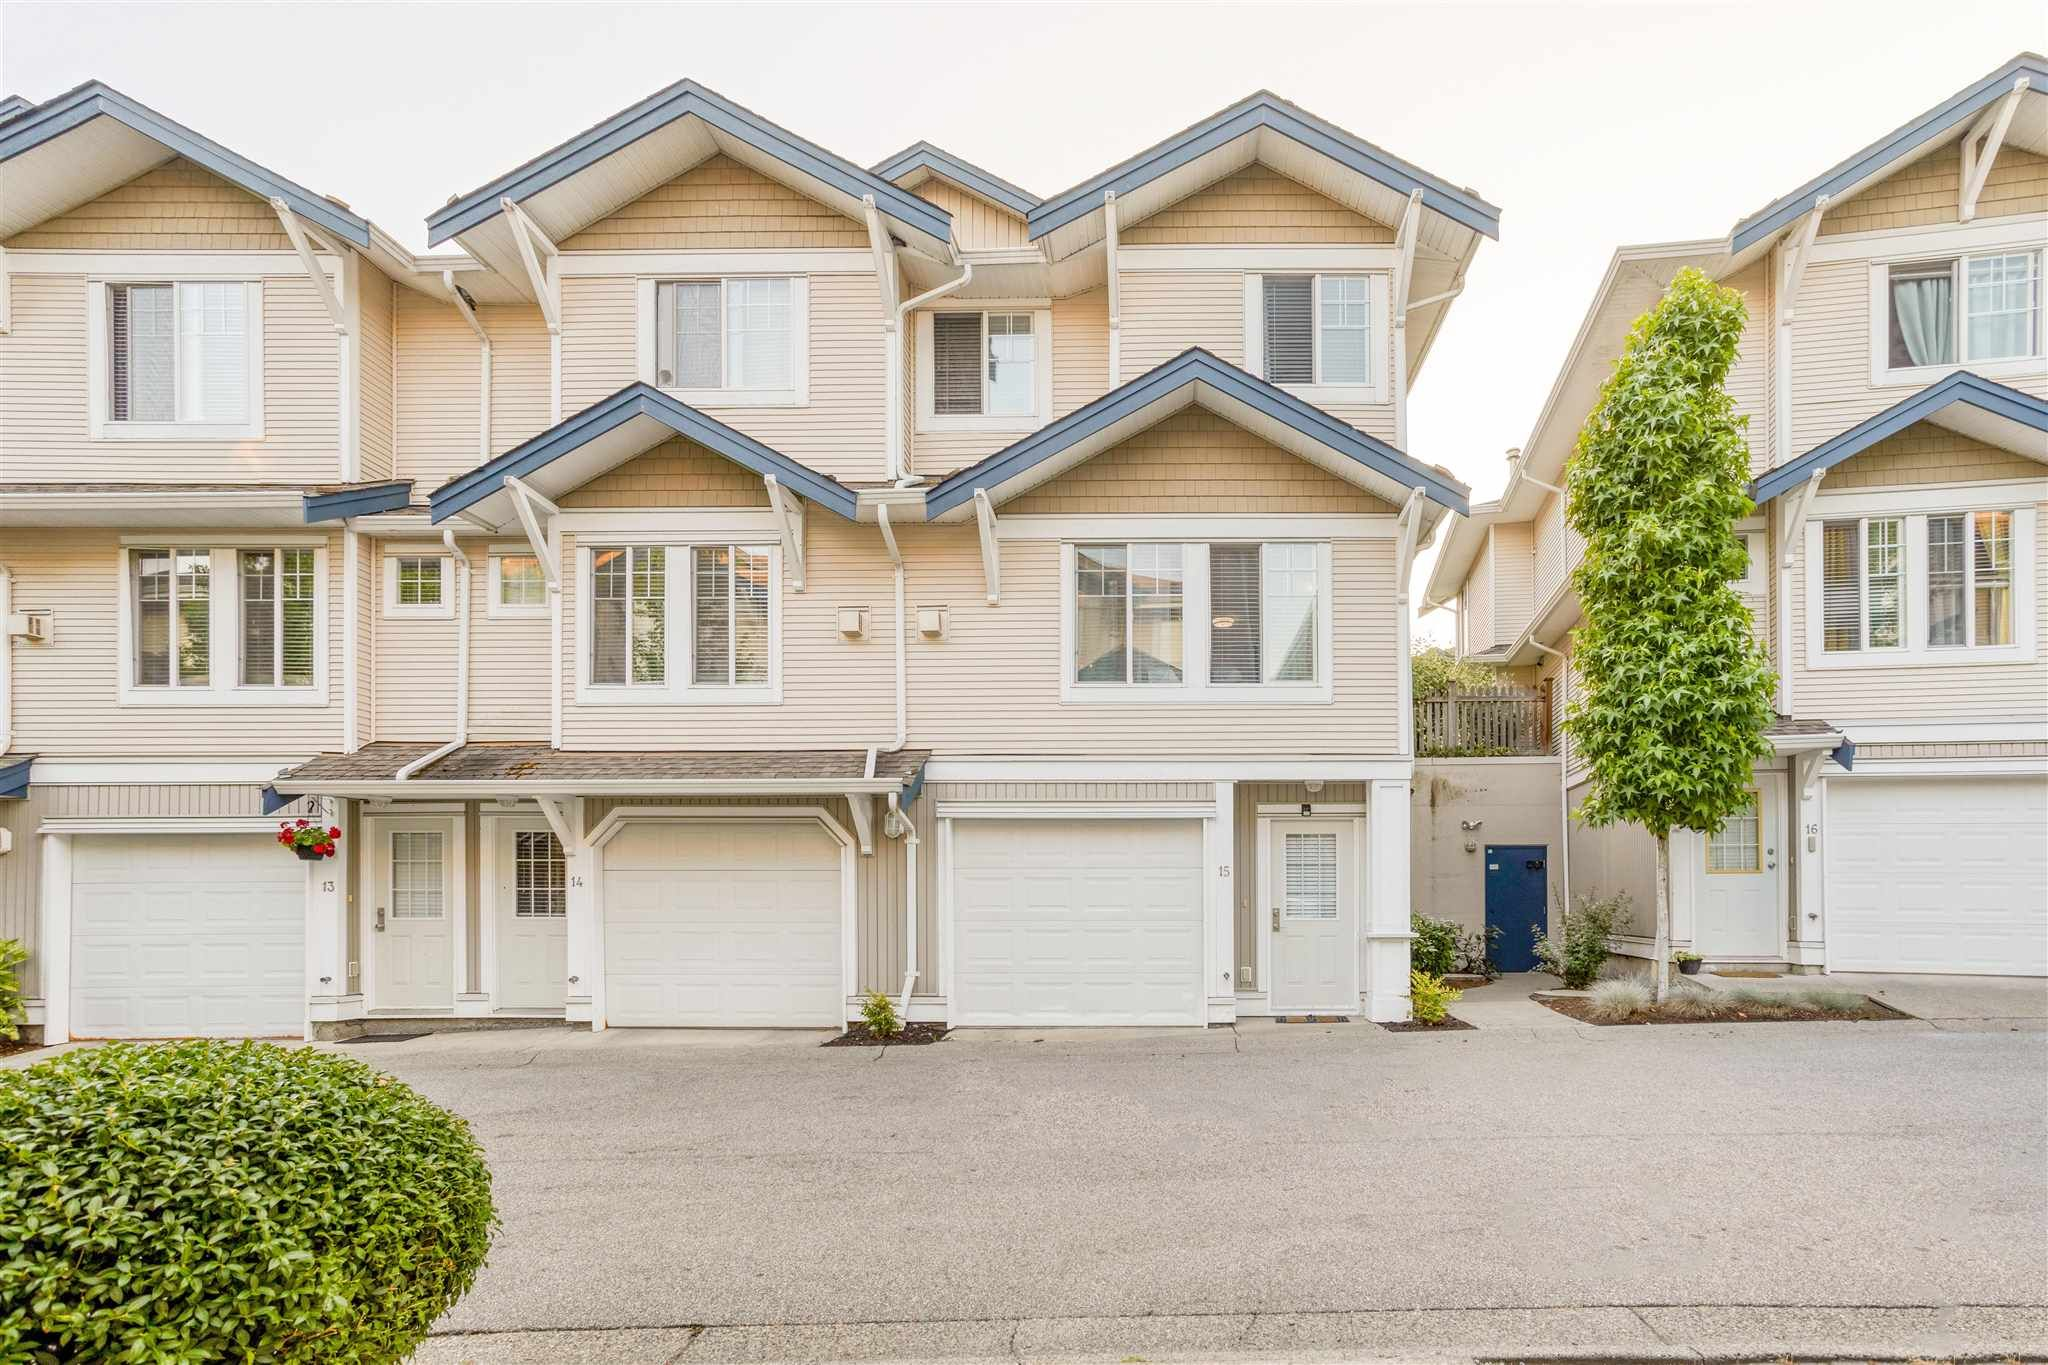 """Main Photo: 15 6533 121 Street in Surrey: West Newton Townhouse for sale in """"STONEBRIAR"""" : MLS®# R2602368"""